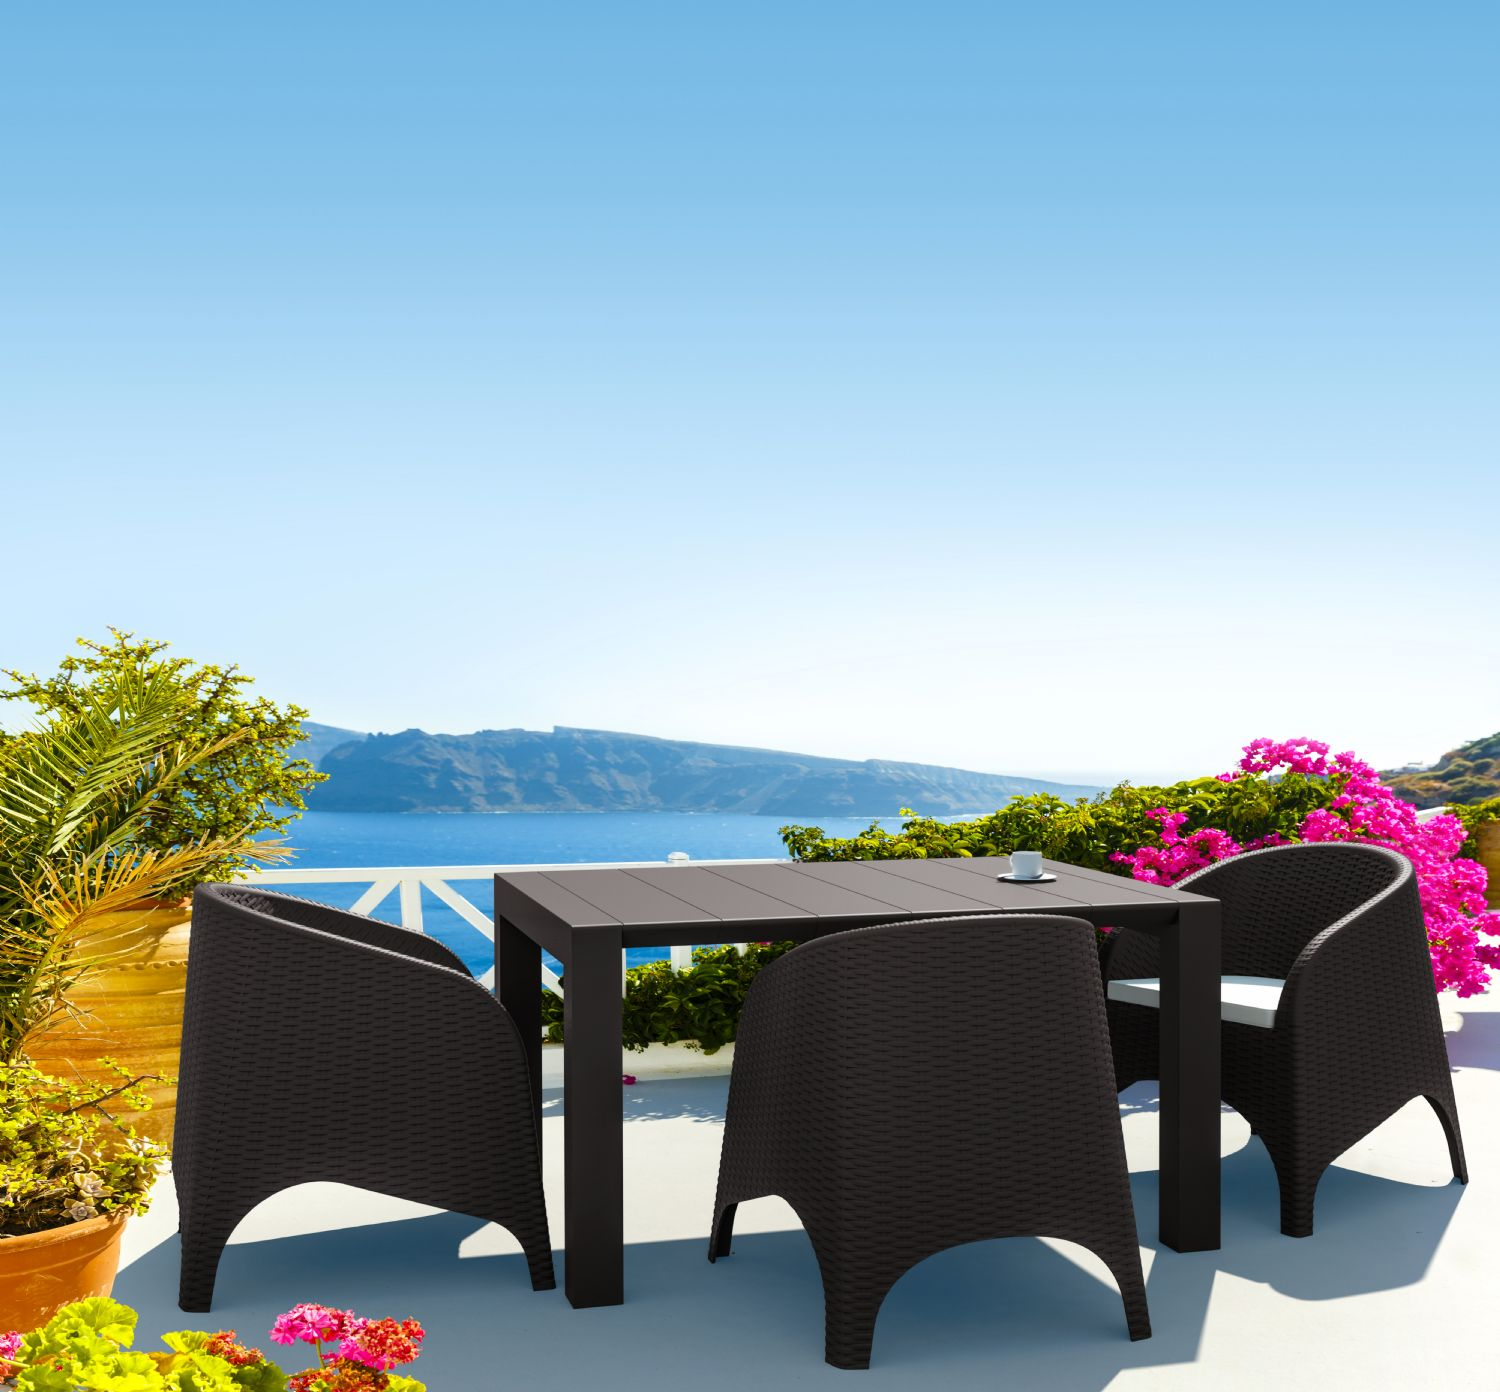 Vegas Outdoor Dining Table Extendable from 39 to 55 inch White ISP772-WH - 5